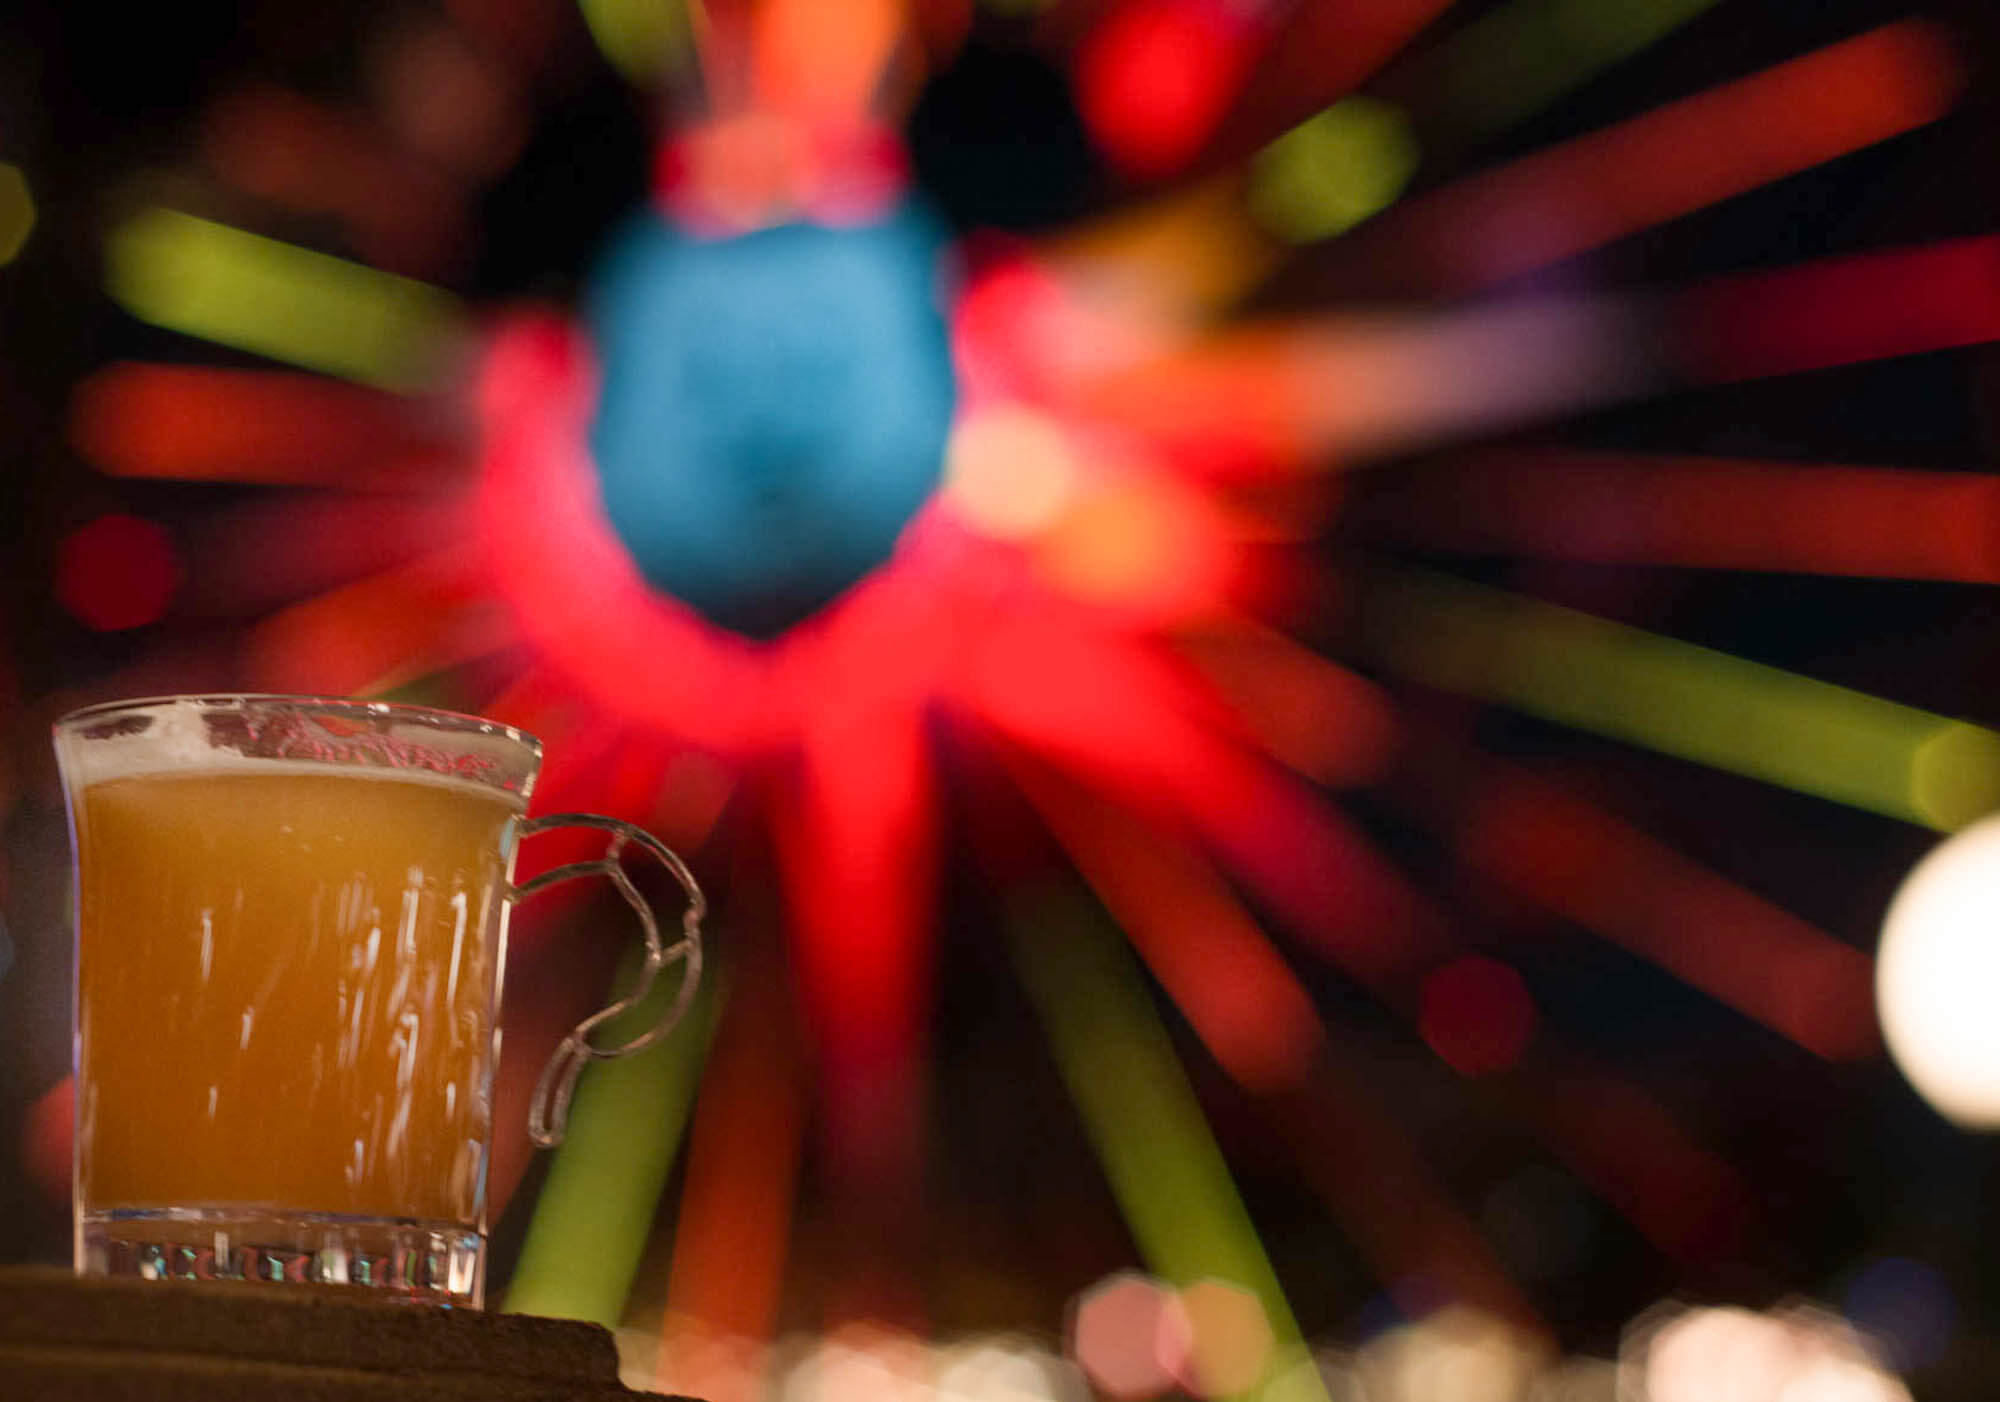 Warm Bourbon Cider with House-made Bourbon-infused Marshmallow at Disneyland Festival of Holidays